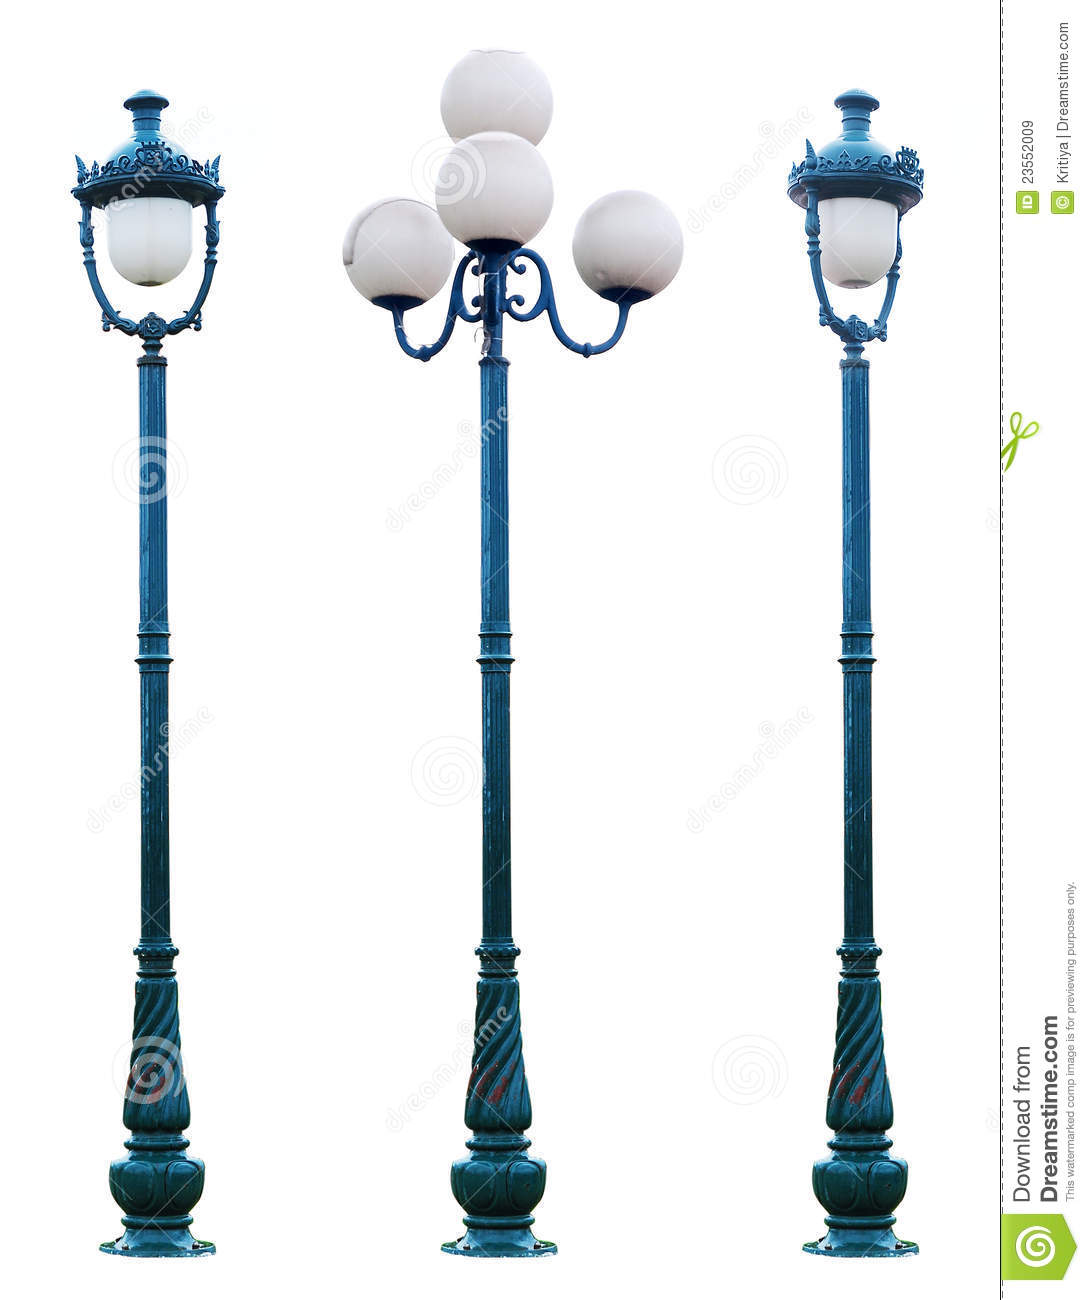 Antique Lamp Post Lamppost Street Road Light Pole Royalty Free Stock ...